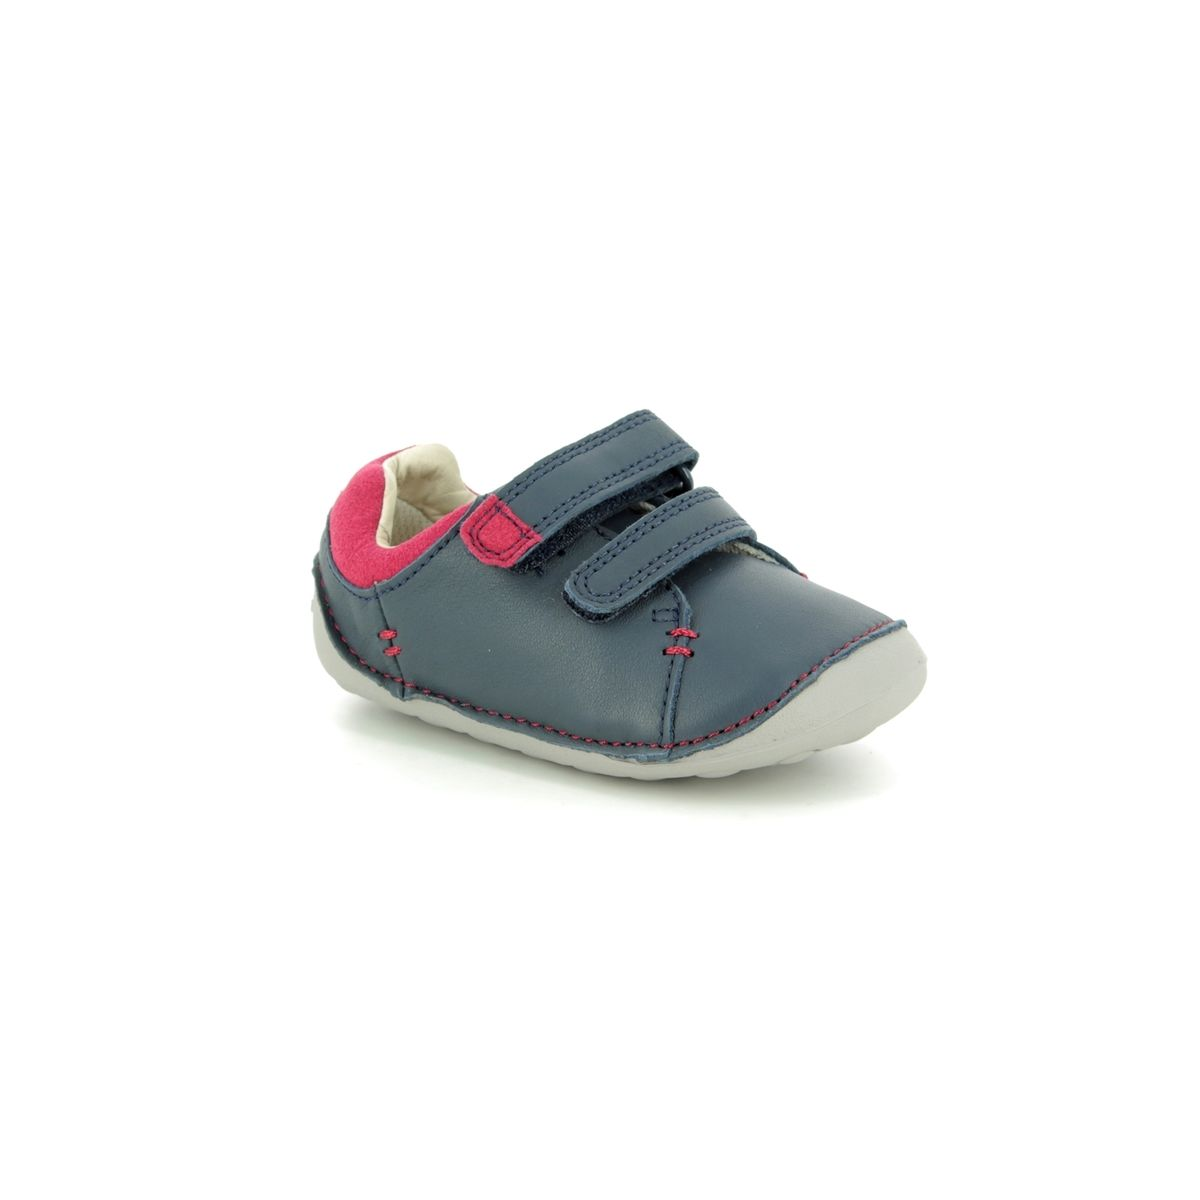 Clarks First Shoes - Navy - 2750 58H TINY TOBY 4b1768657